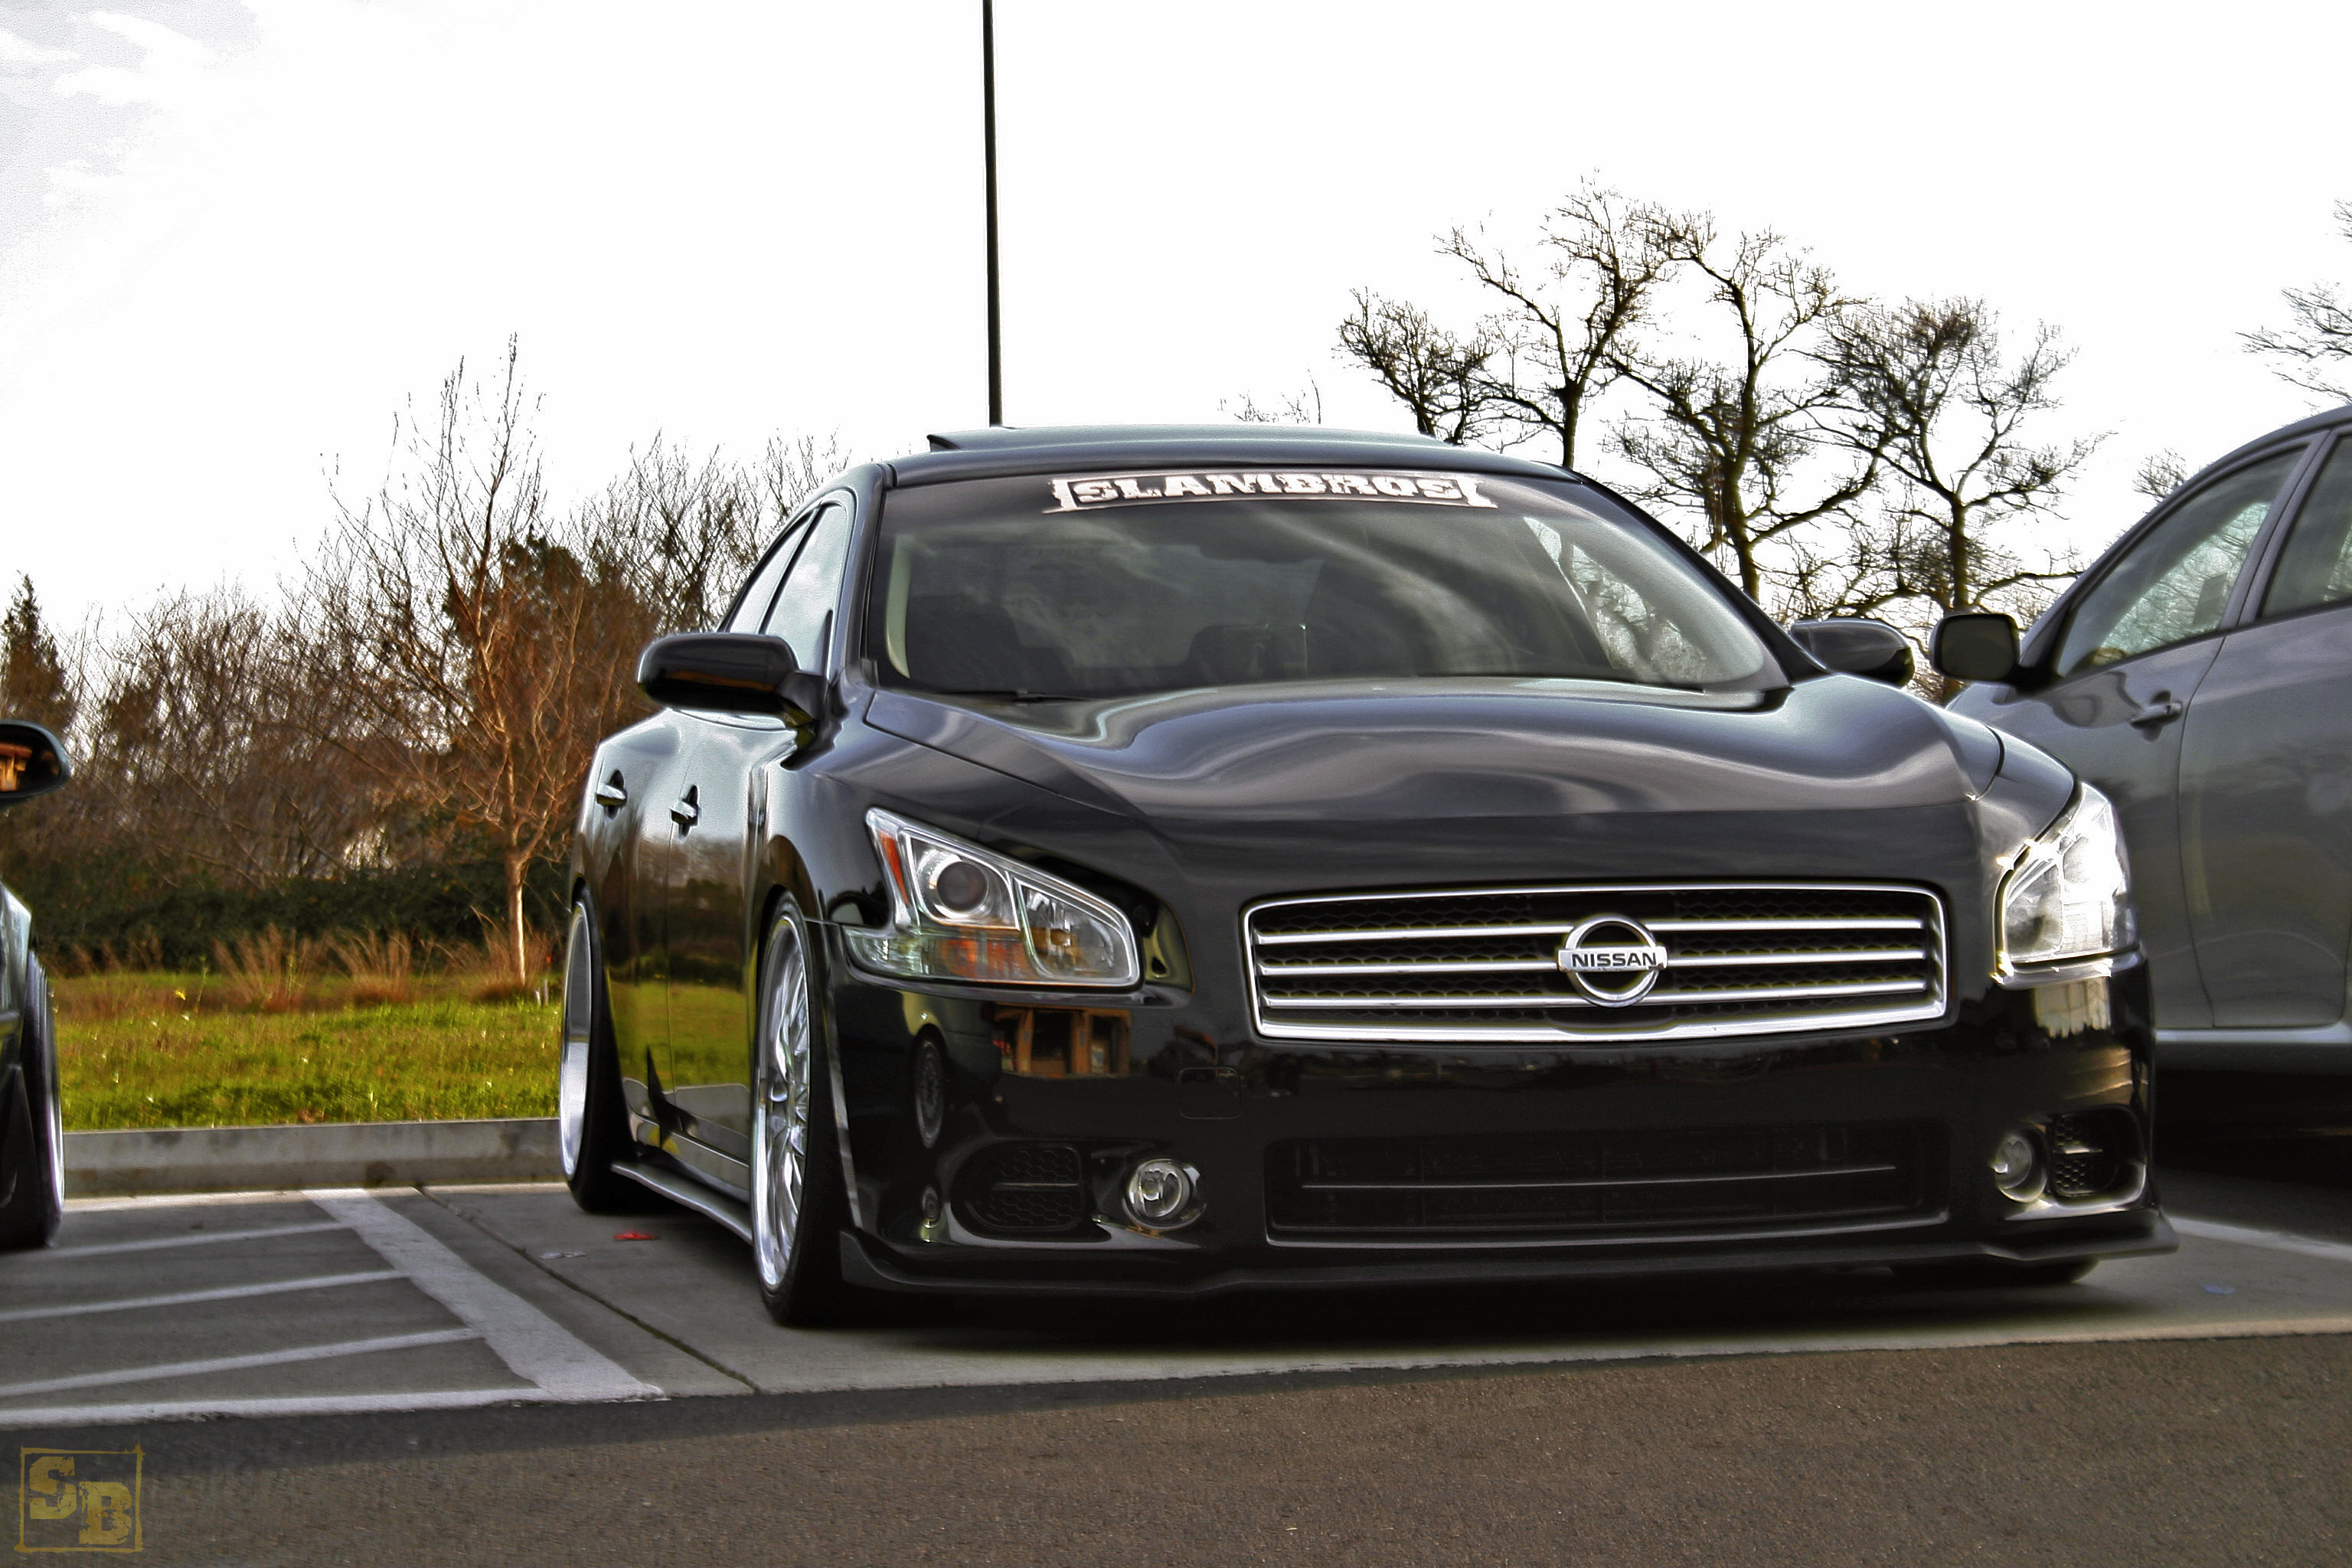 Nissan Maxima 2004 Interior 2 moreover Musclecar Stance 2014 Camaro Ss Niche Milan M134 Wheels Bc Coilovers besides 689608 2010 Nissan Maxima Sv Premium Package besides 2012 likewise 331810 Post Pictures Your New 2013 Altima 15. on 2010 nissan maxima with rims